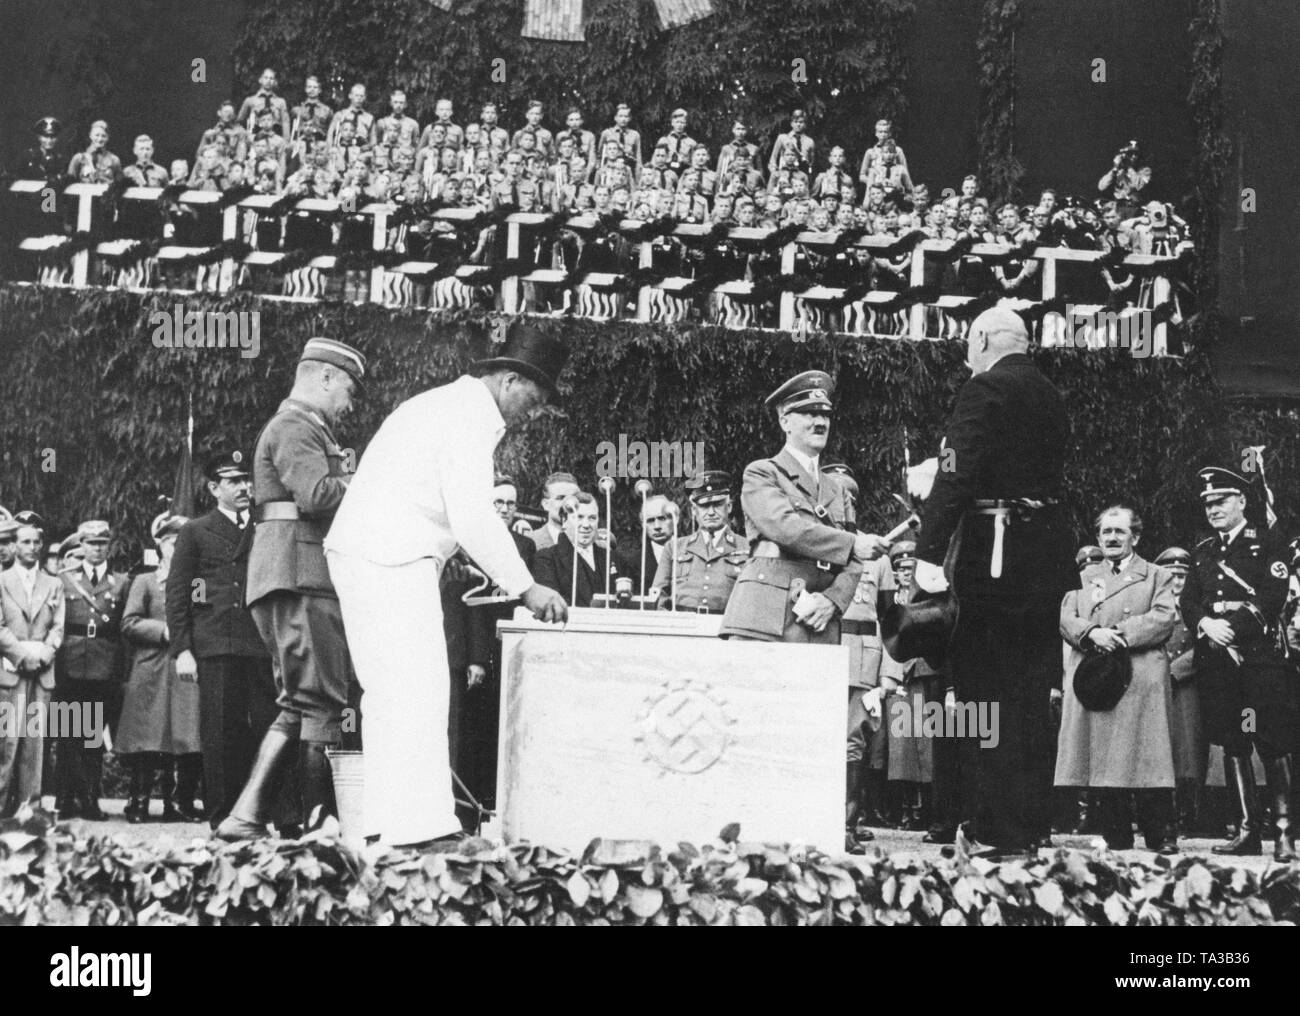 Laying the foundation stone of the Volkswagen plant in the 'Stadt des KdF-Wagens' (City of the KdF Car), now Wolfsburg. Hitler receives the foundation stone hammer from the bricklayer foreman. - Stock Image